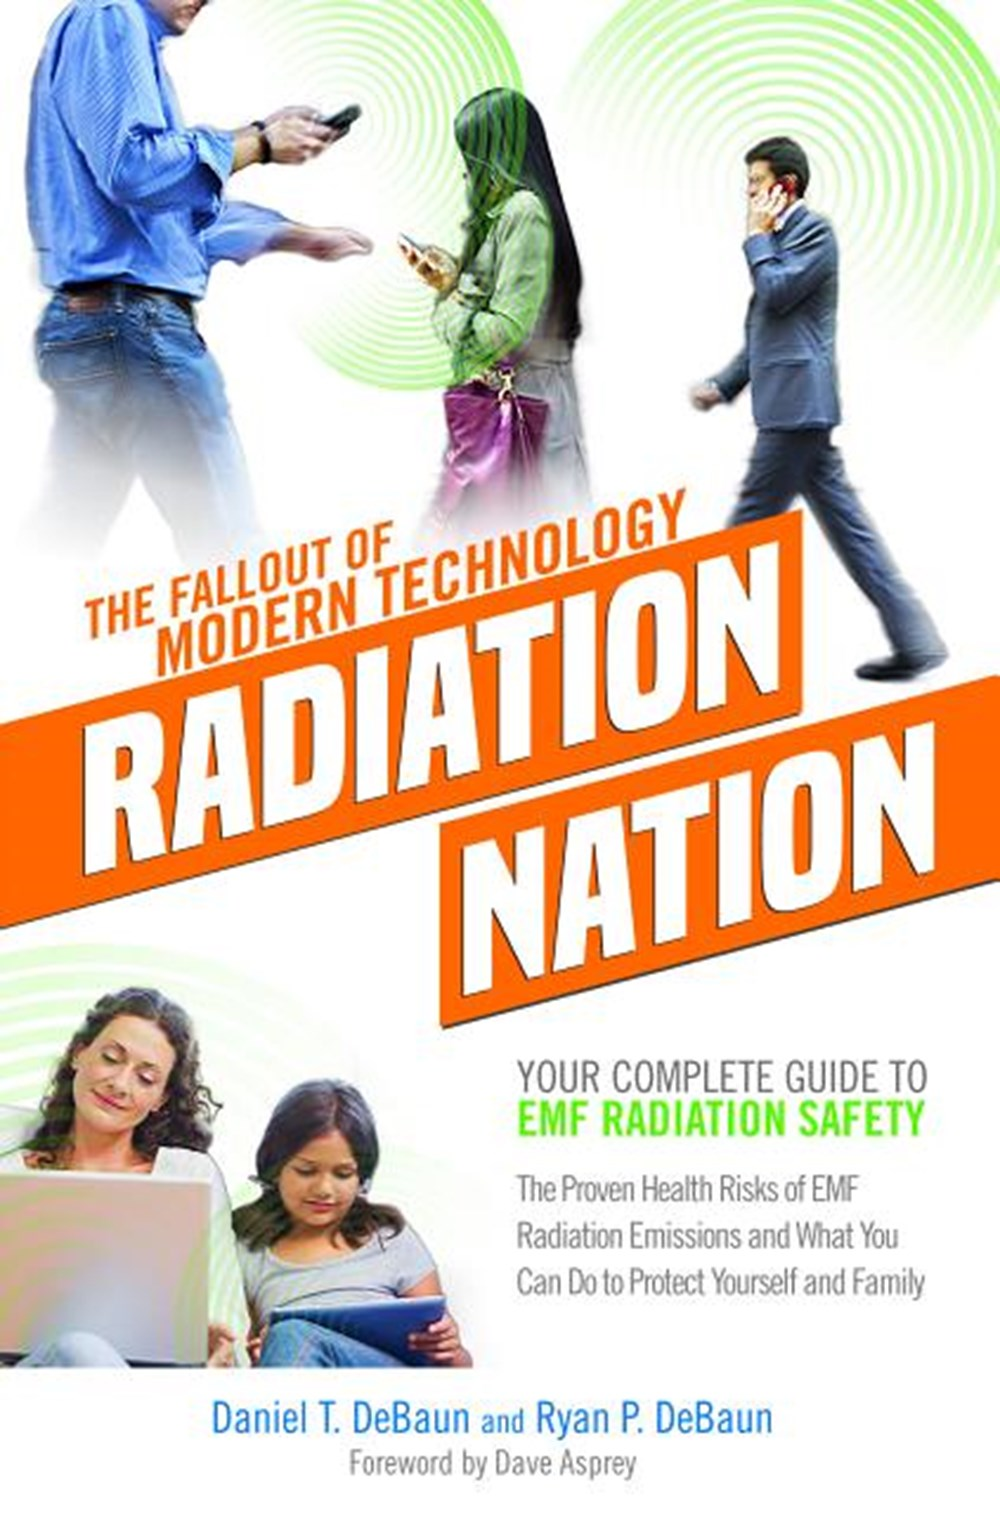 EMF Book Radiation Nation - Complete Guide to EMF Protection & Safety: The Proven Health Risks of EM